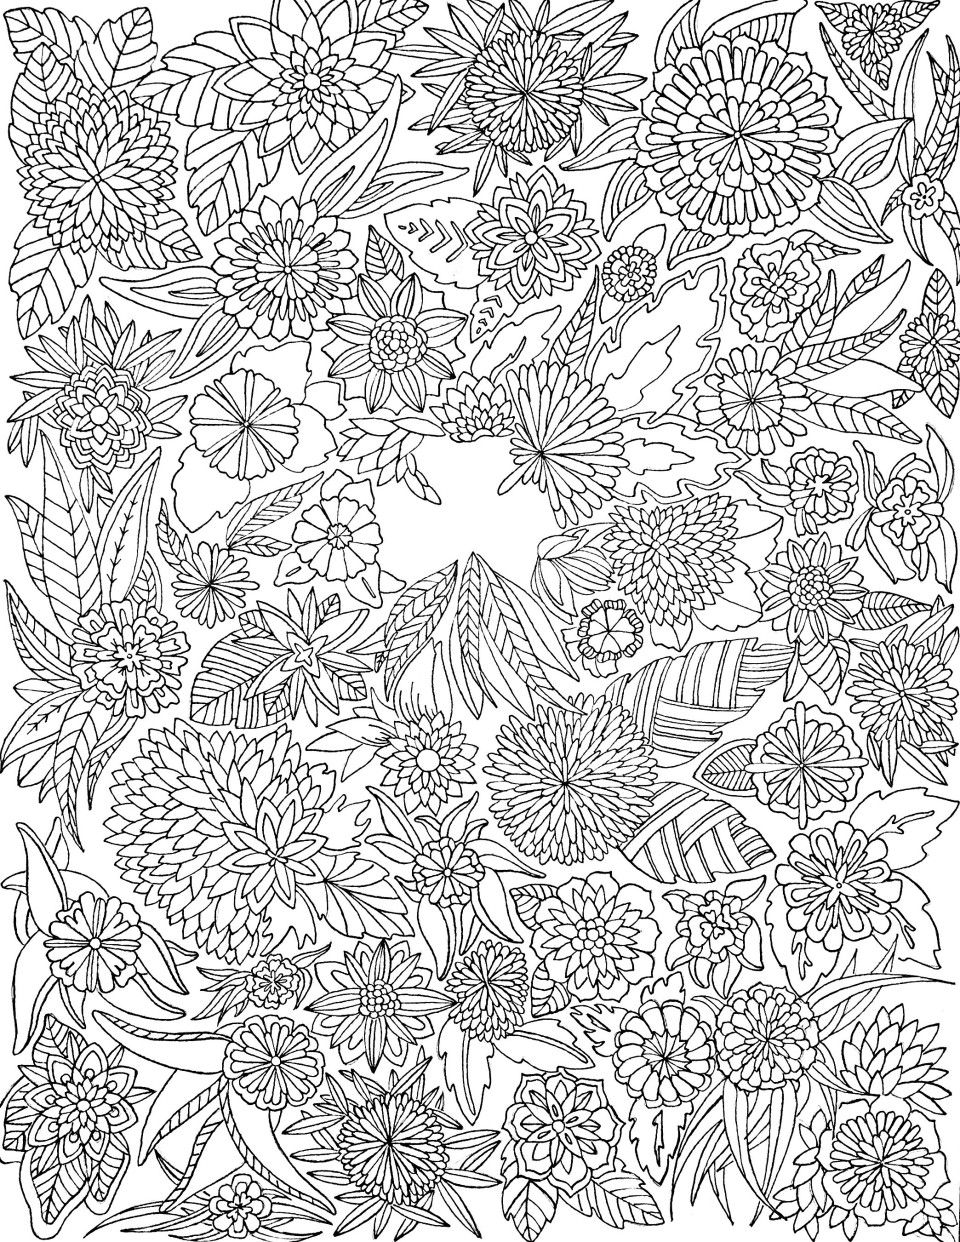 Coloring In March Coloring Pages Adult Coloring Free Adult